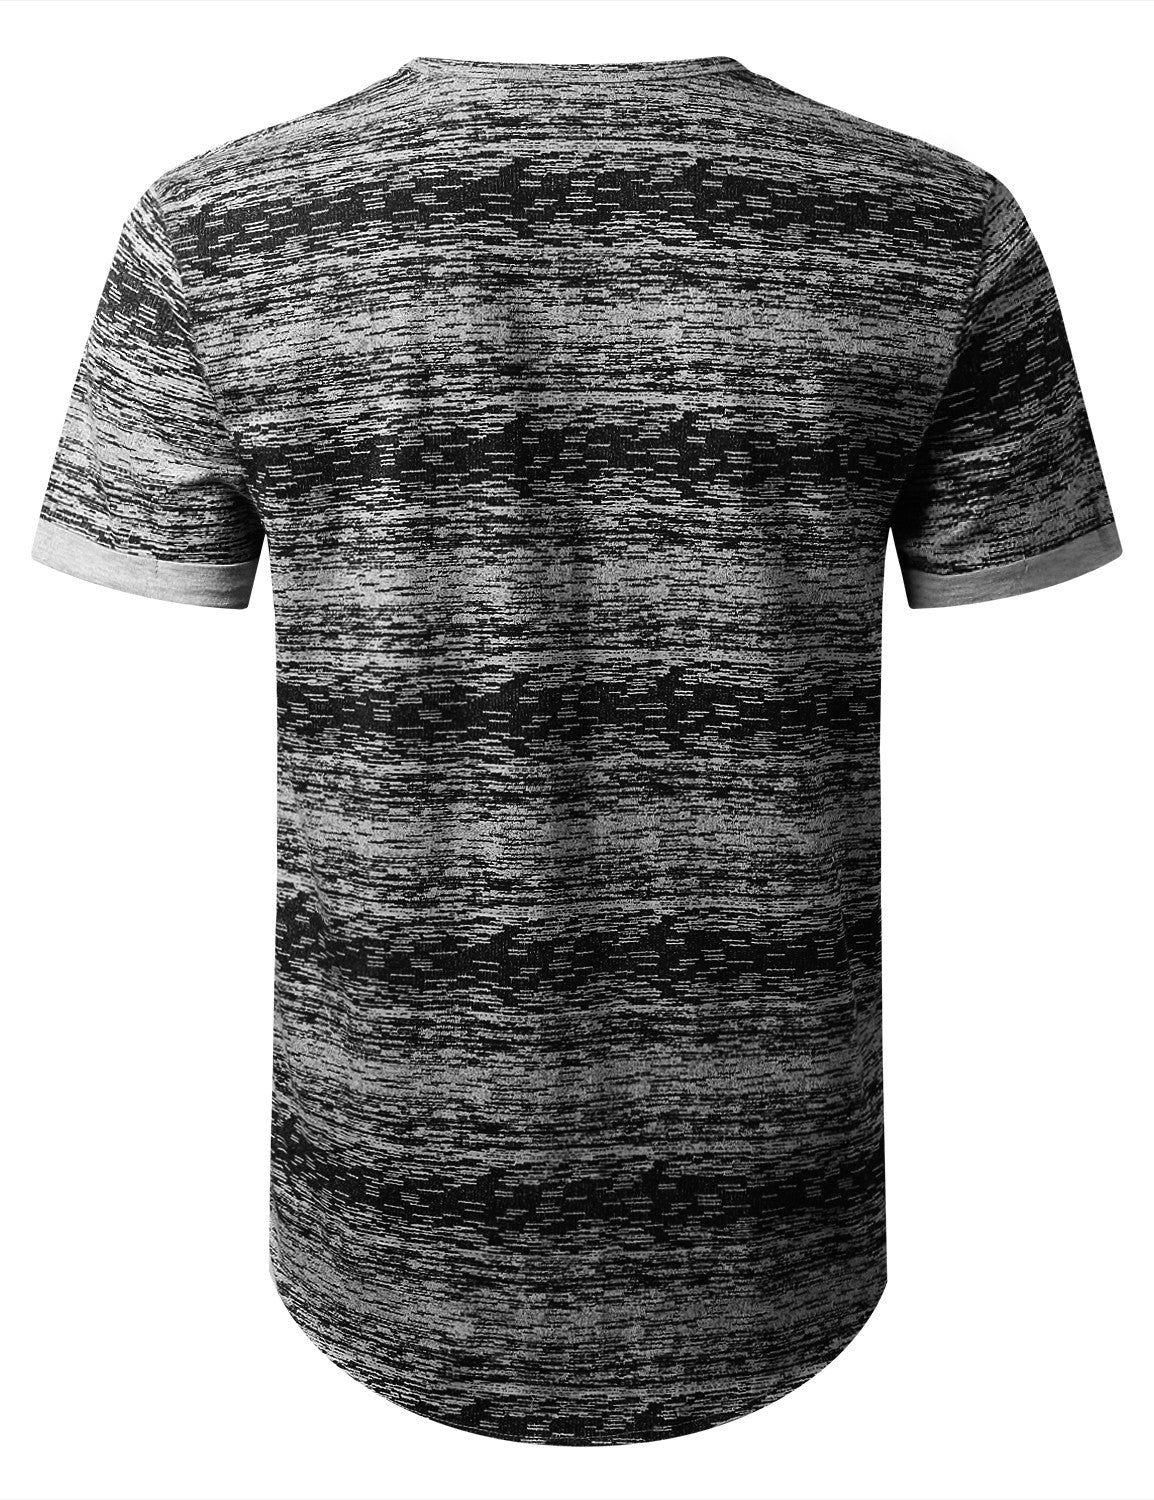 BLACK Space Dye Paint Pocket T-shirt - URBANCREWS